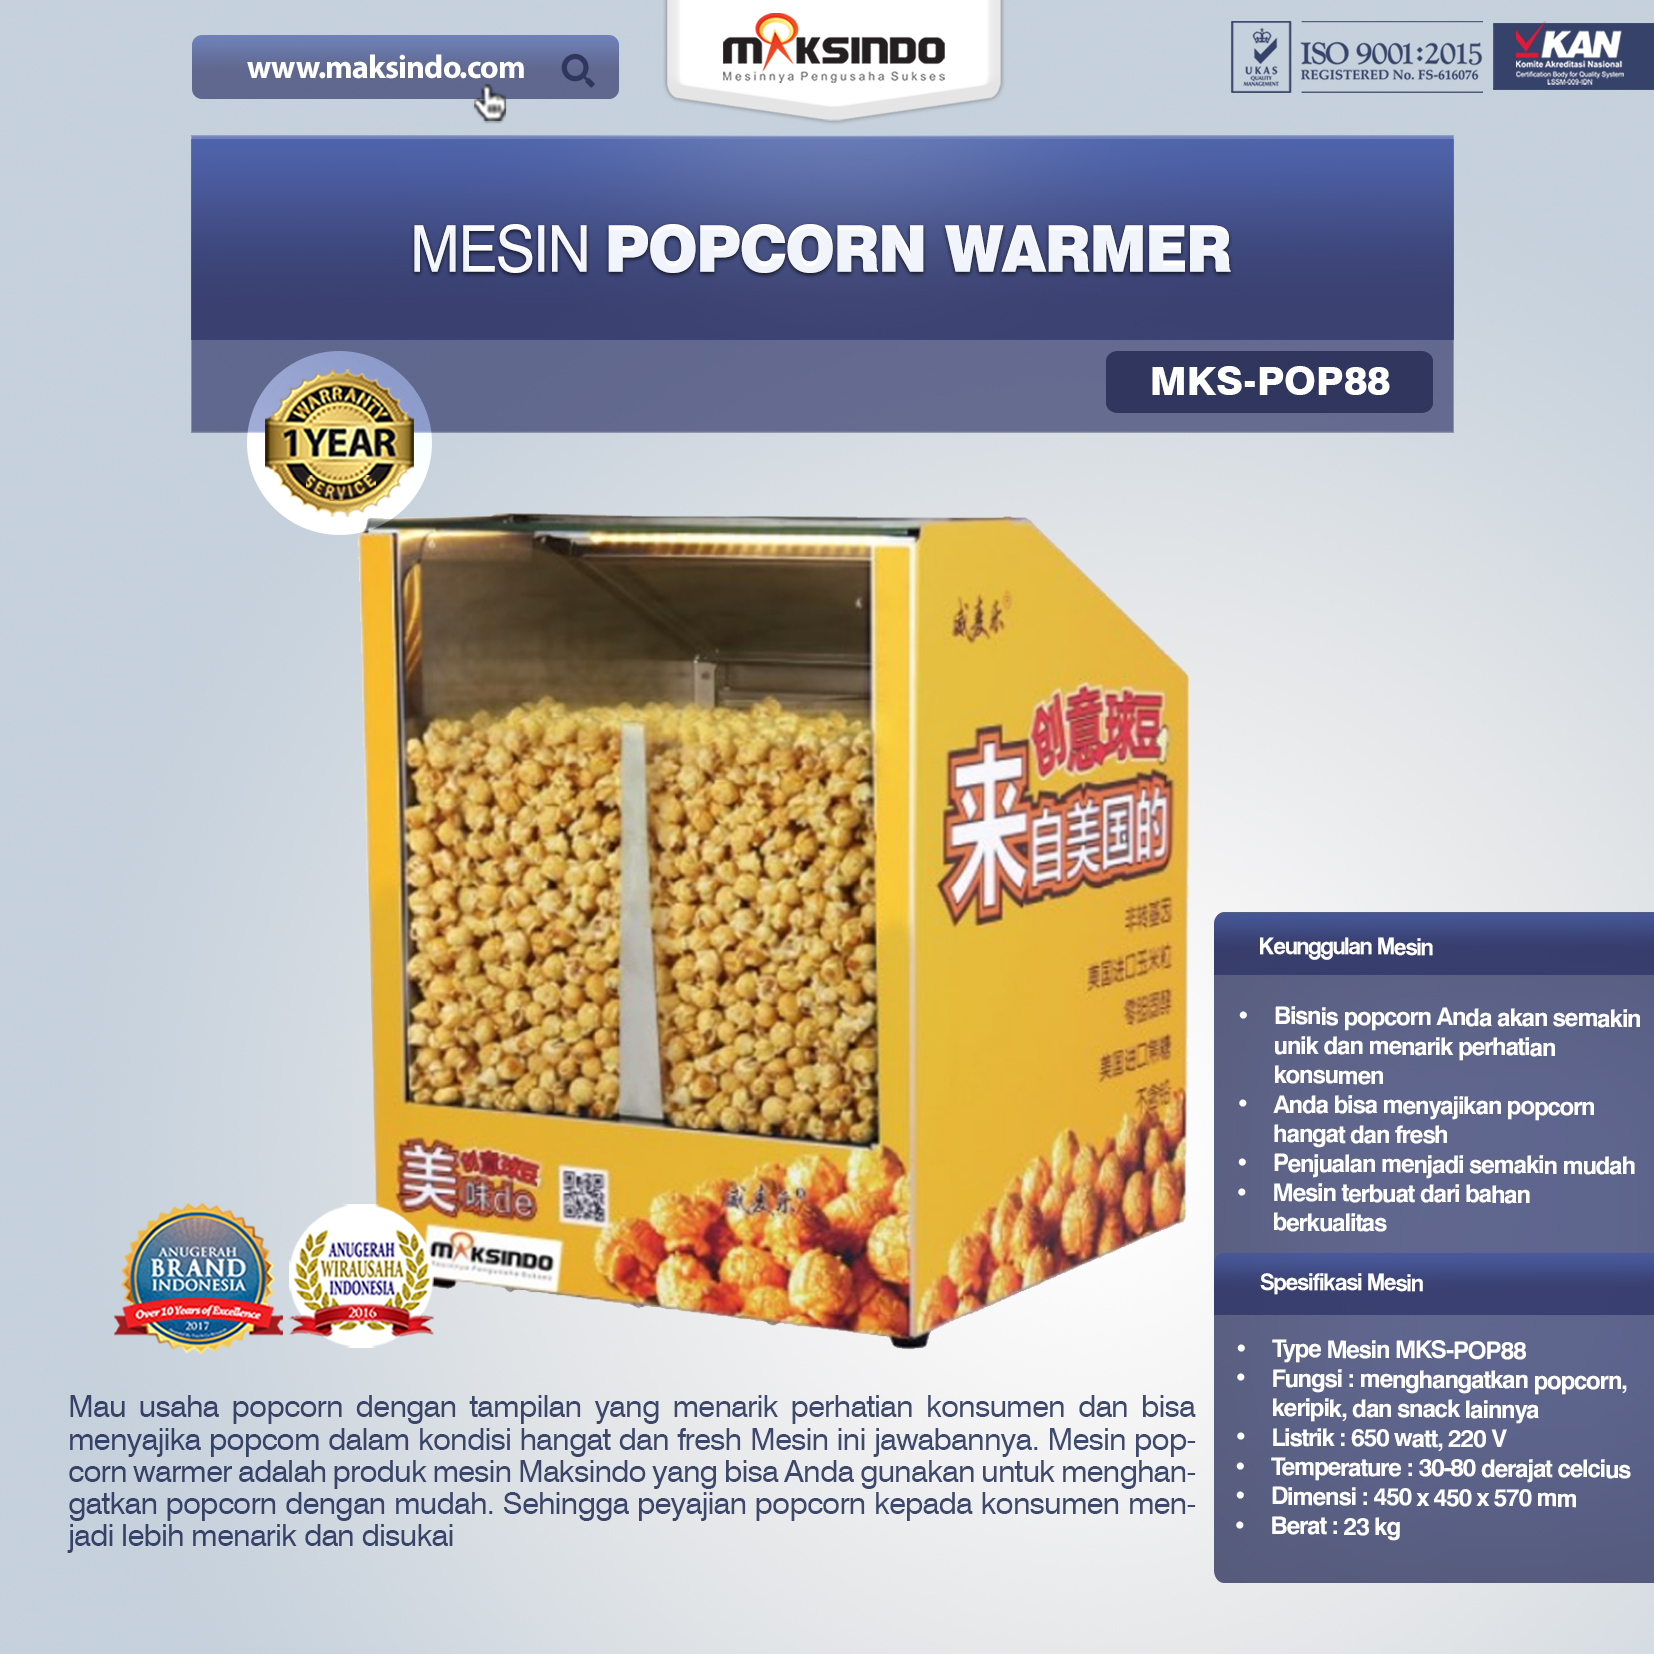 Mesin Popcorn Warmer (POP88)